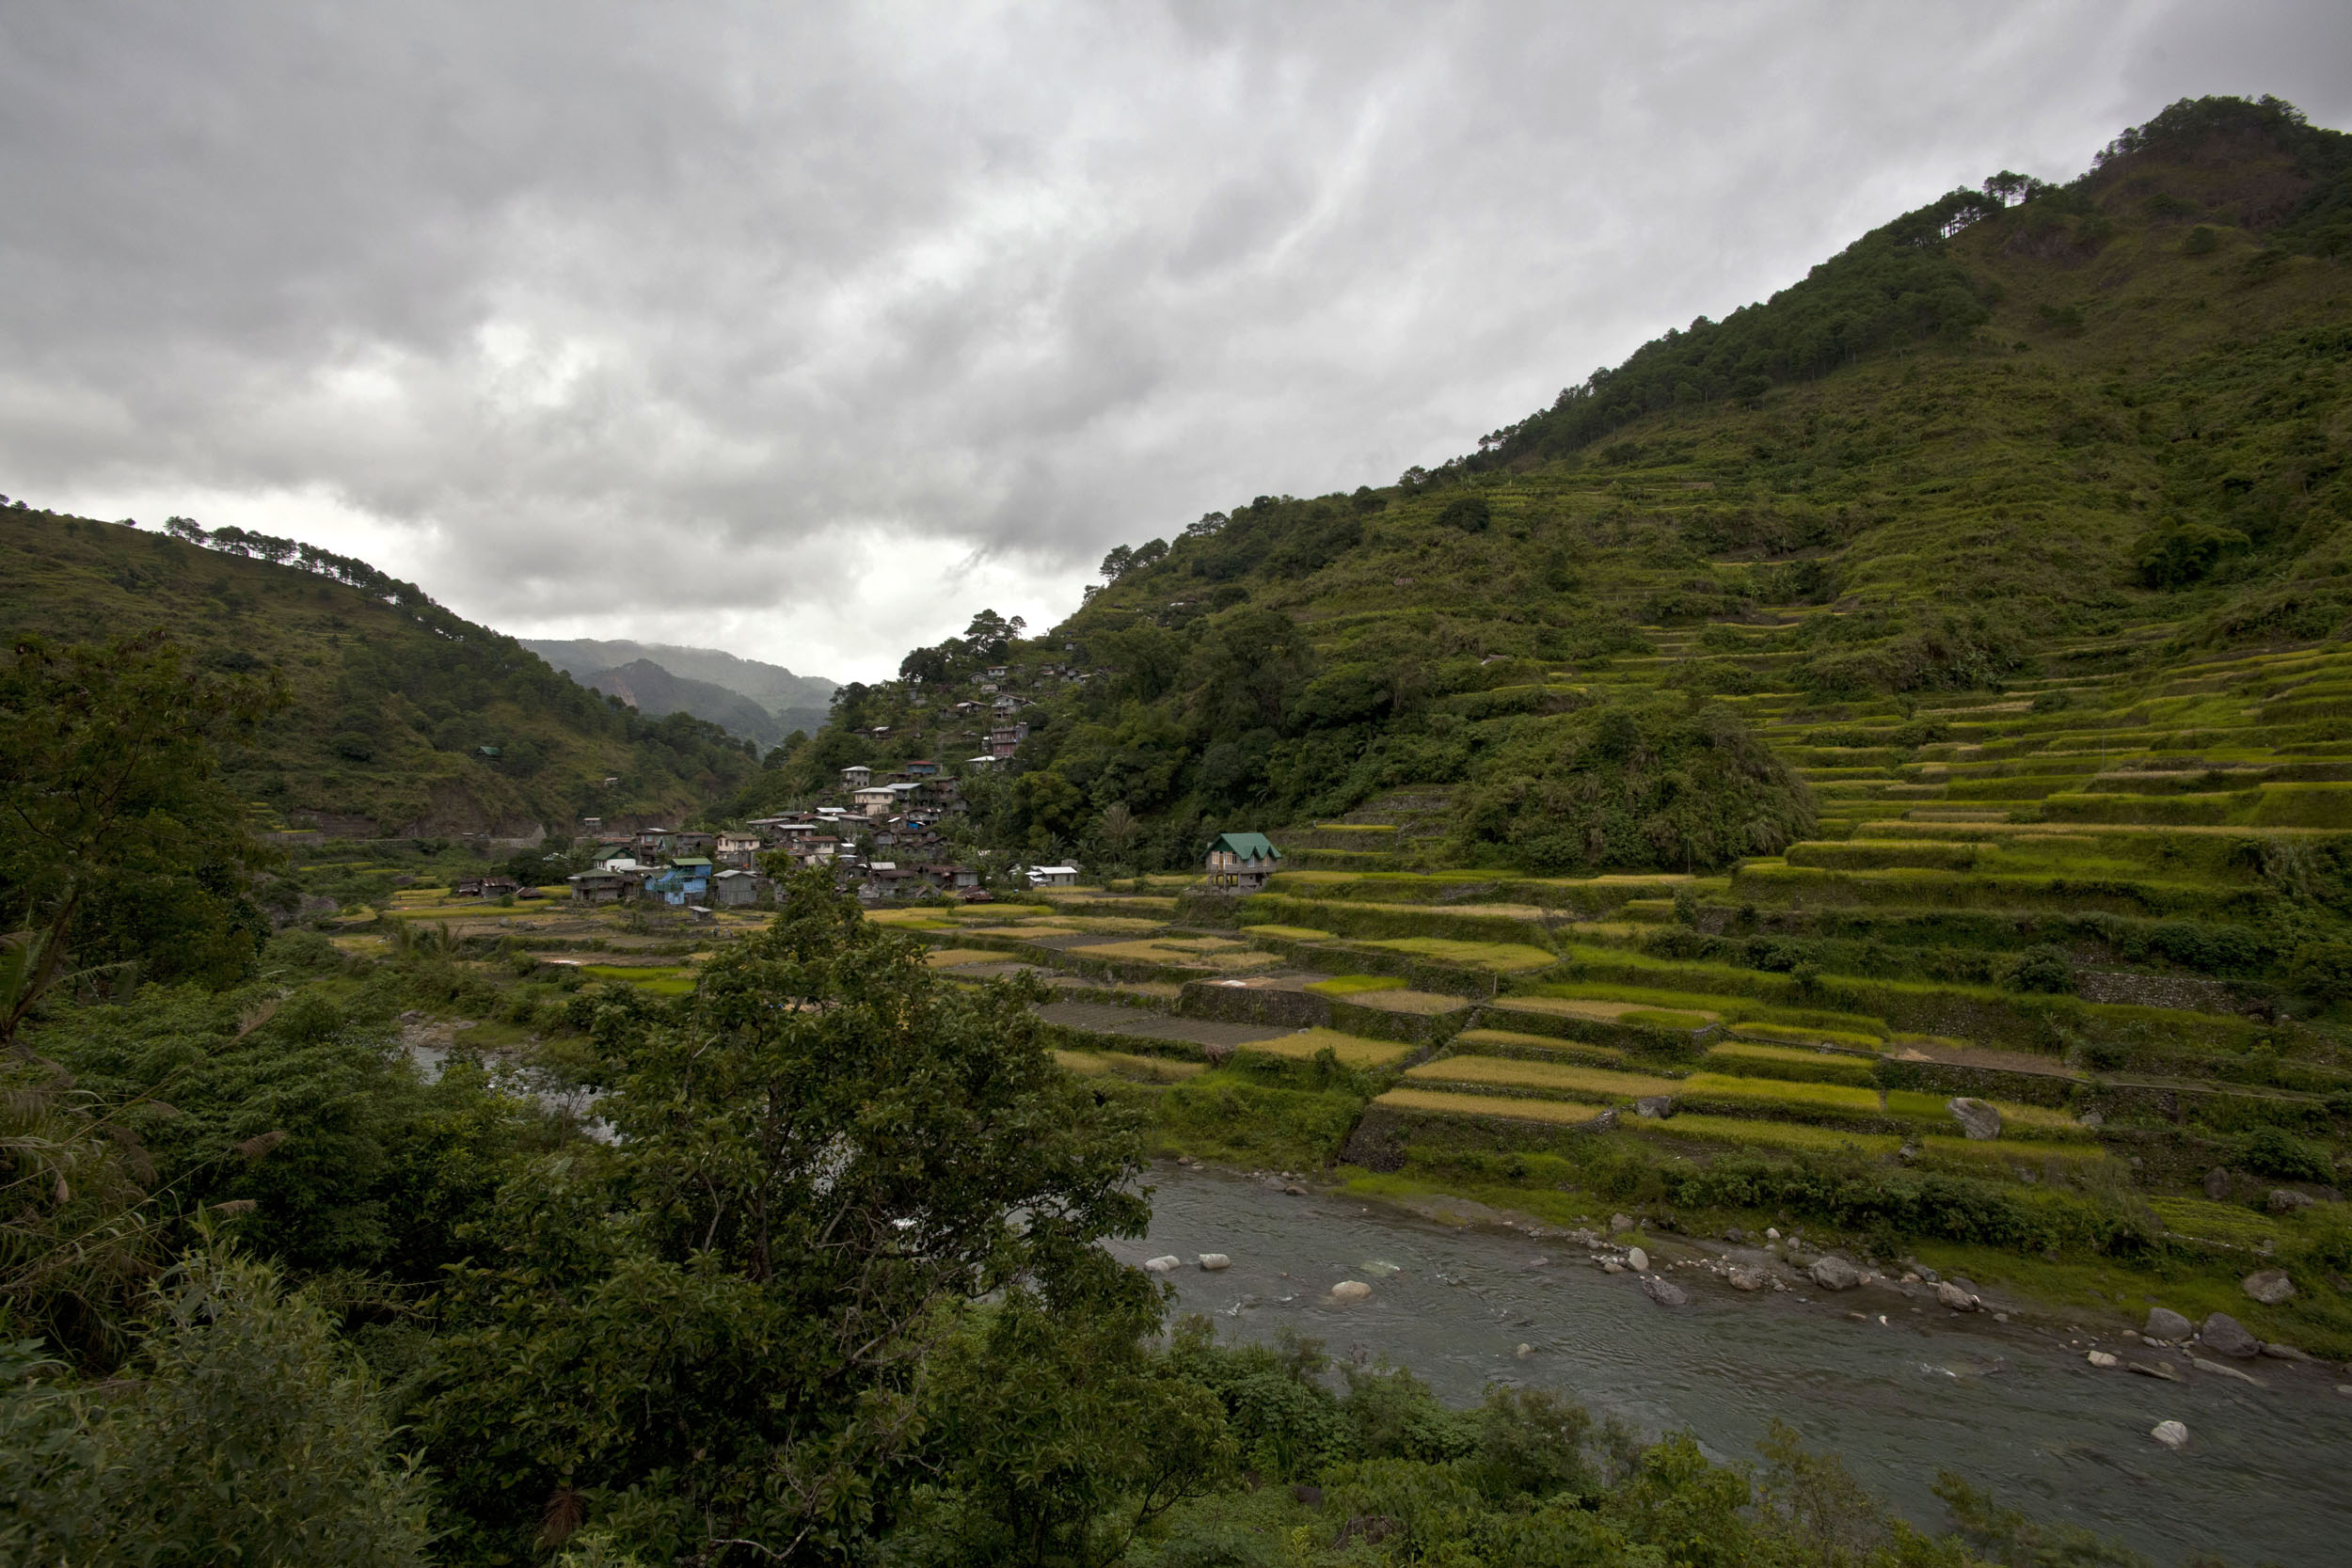 Panoramic views along the Kabayan Rd Halsema Highway from Baguio to Sagada Aug 2011 10